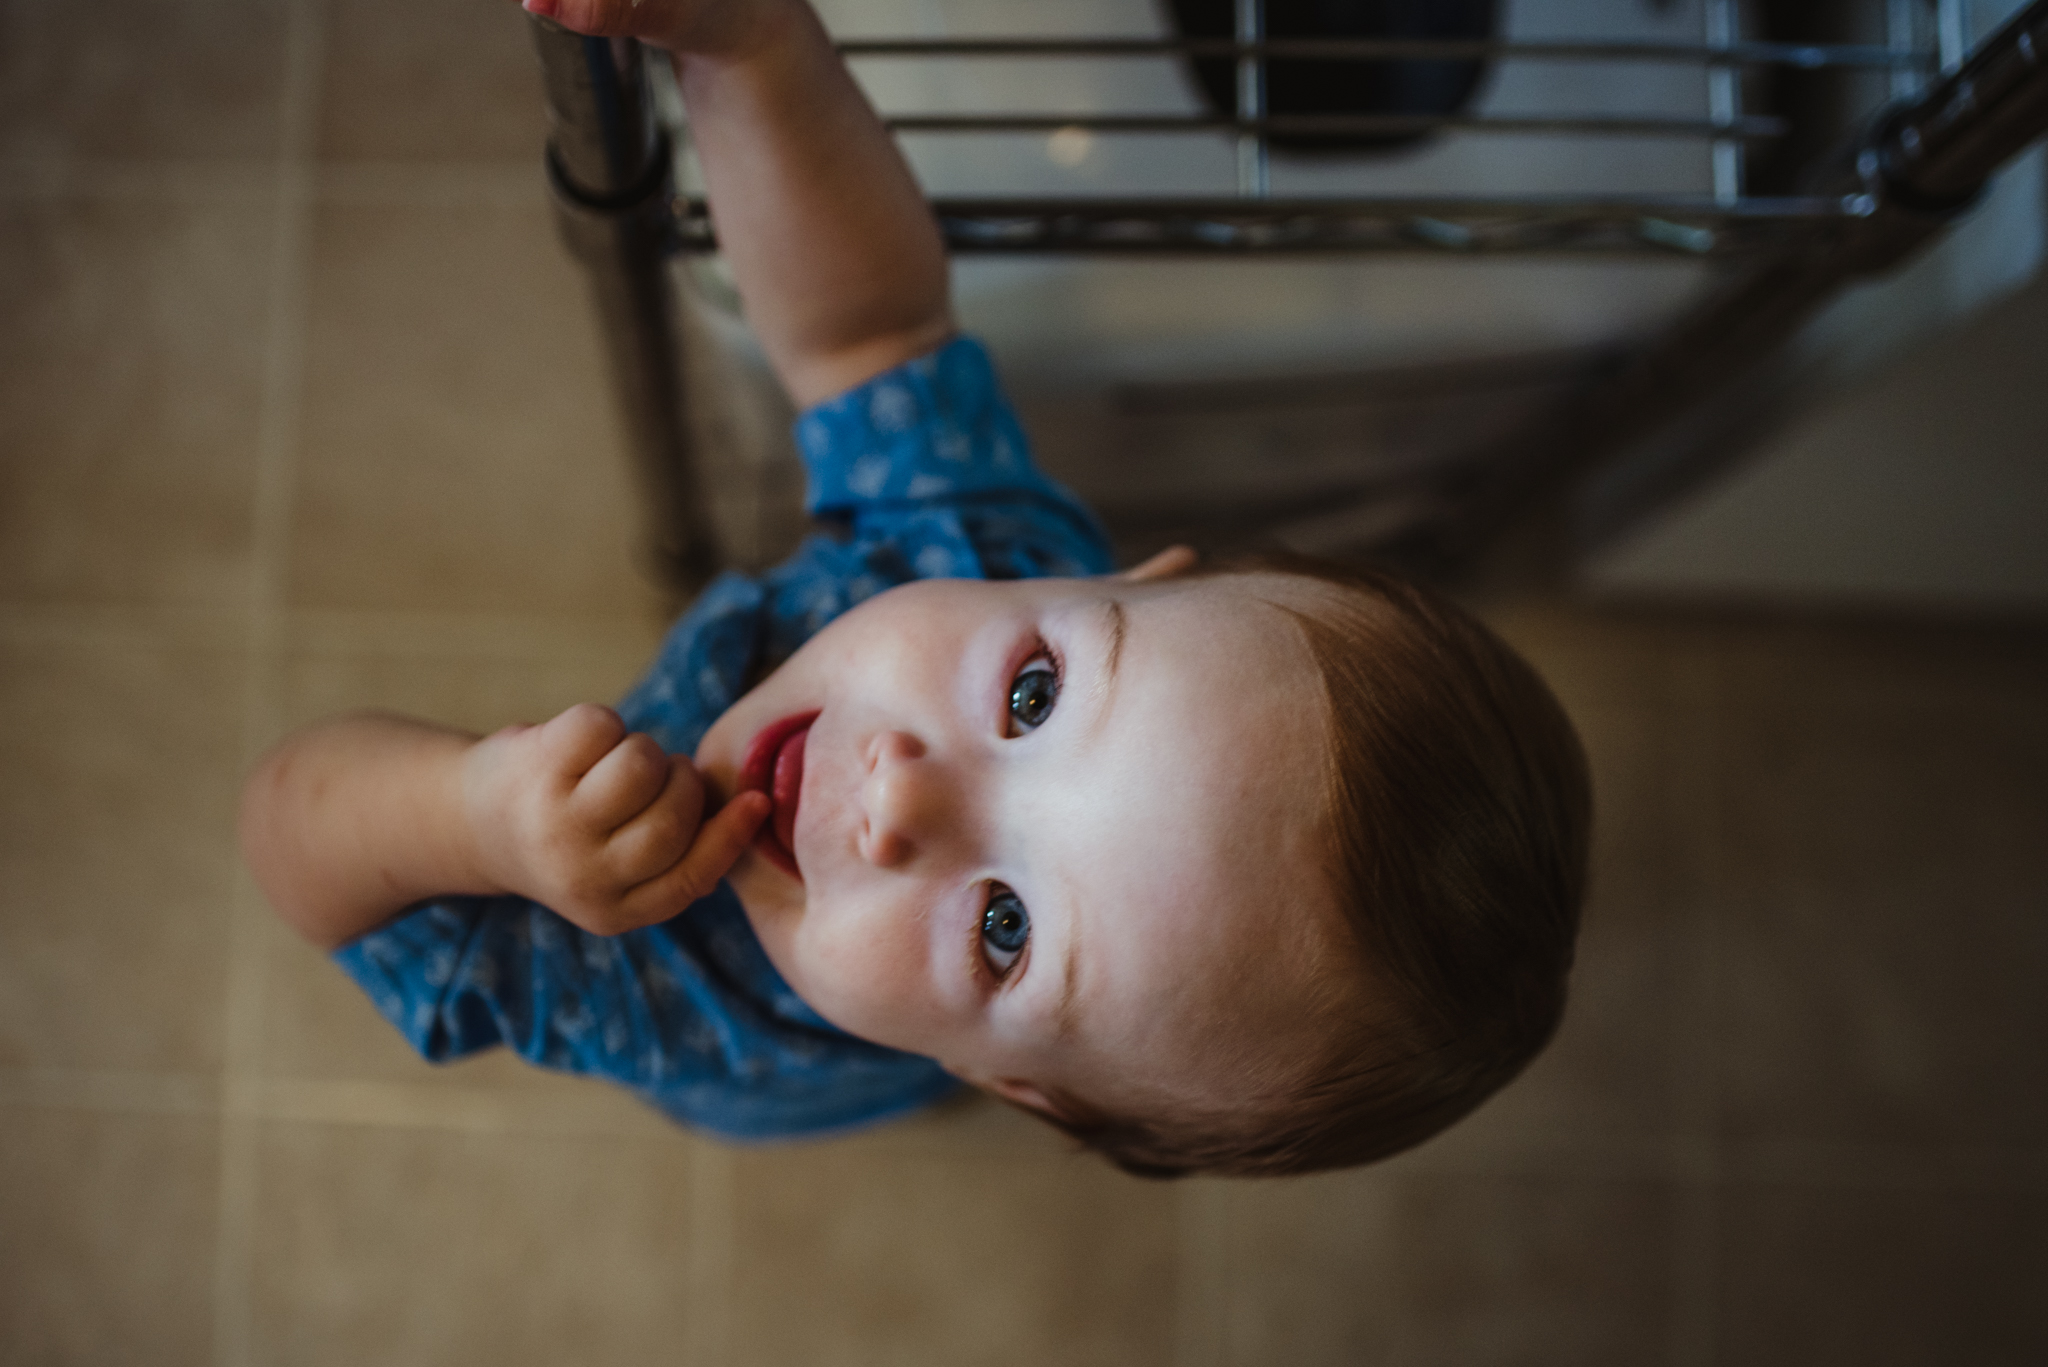 The baby wanders in the kitchen and looks up at the camera during their lifestyle session at home in Wake Forest with Rose Trail Images.